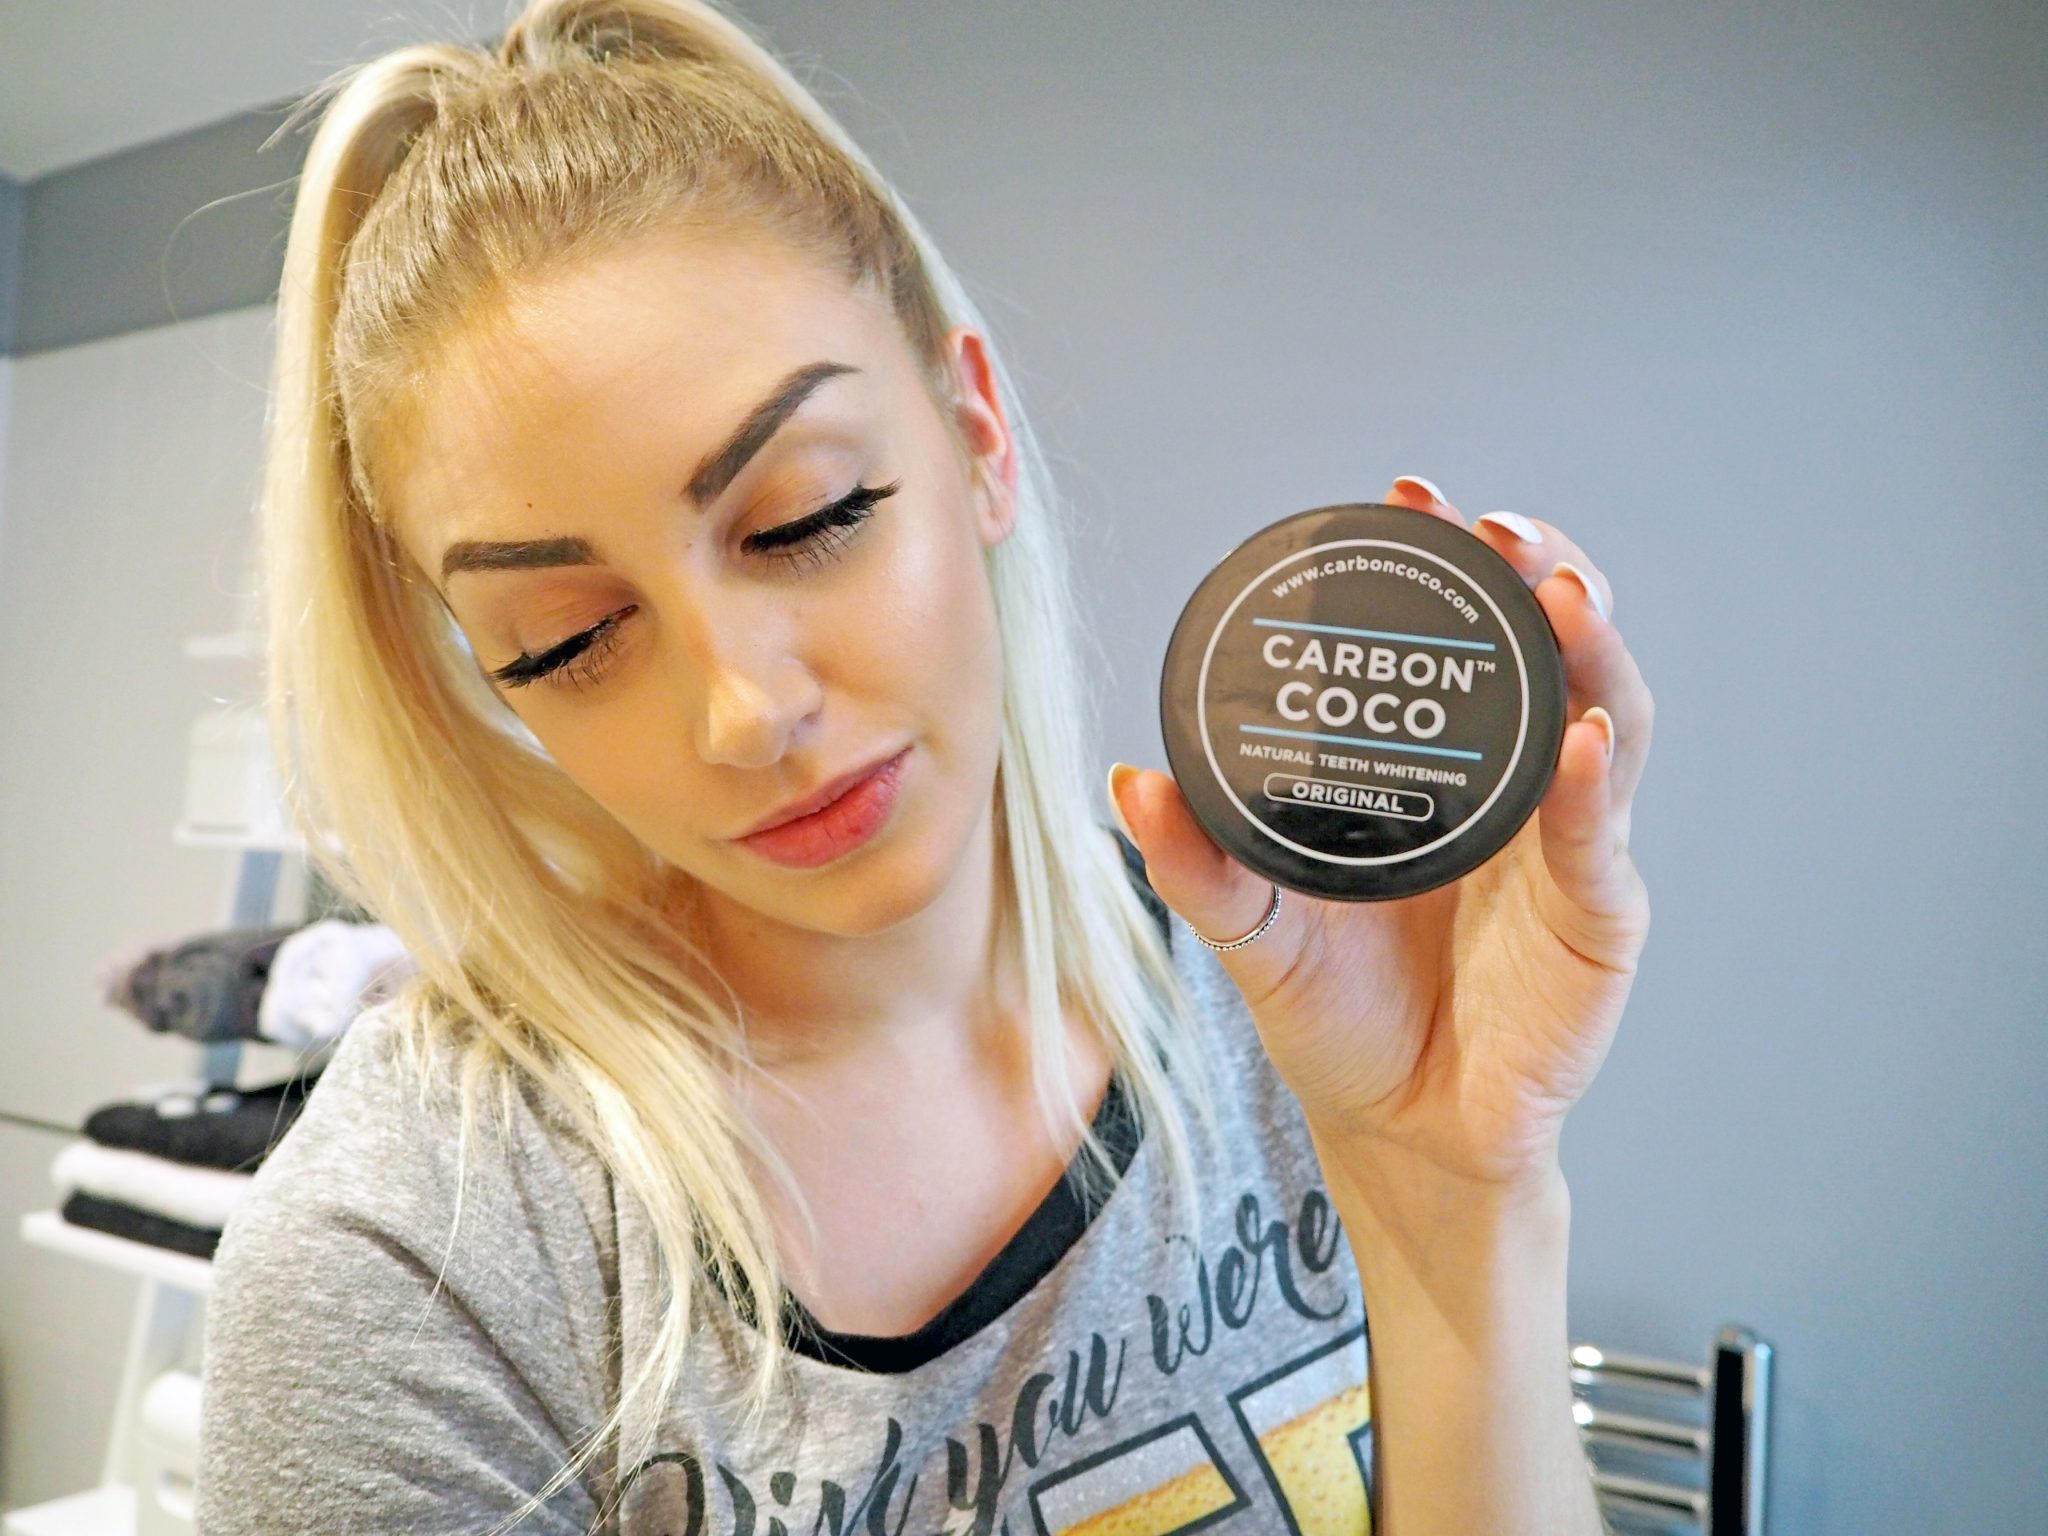 Laura Kate Lucas - Manchester Fashion, Beauty and Lifestyle Blogger | Carbon Coco Natural Charcoal Teeth Whitening